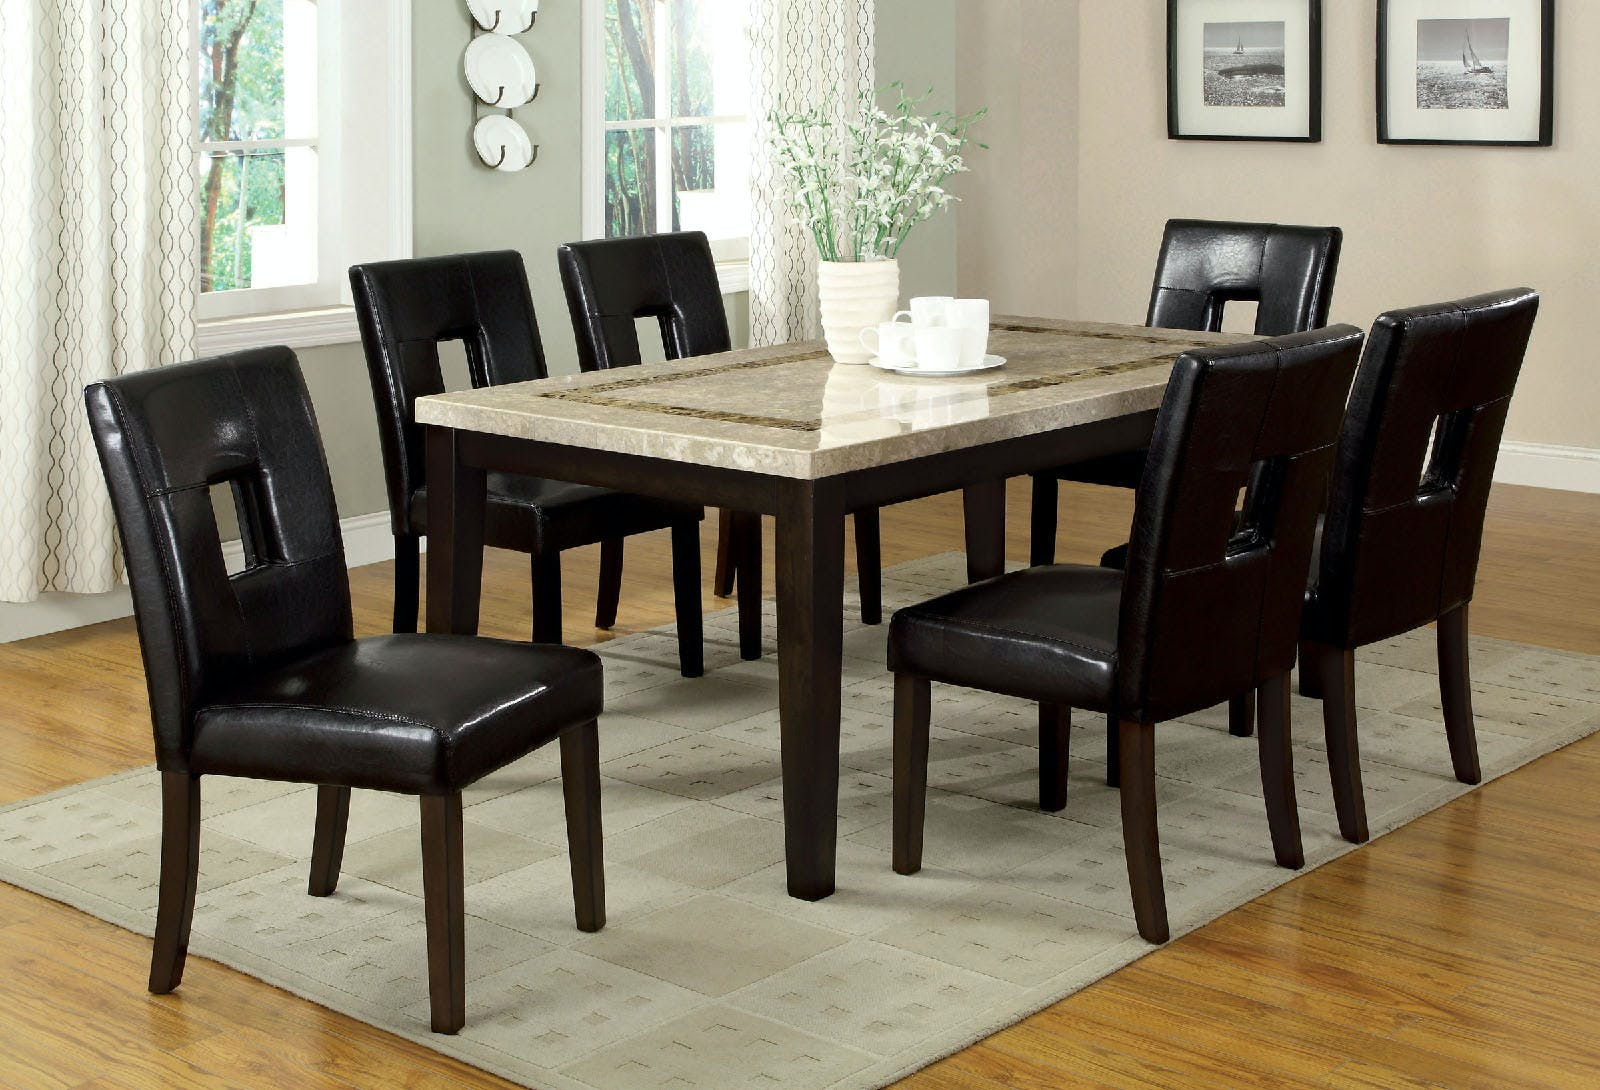 Picture of: Furniture Of America Dining Room Marble Top Rectangular Dining Table Cm3693t The Furniture Mall